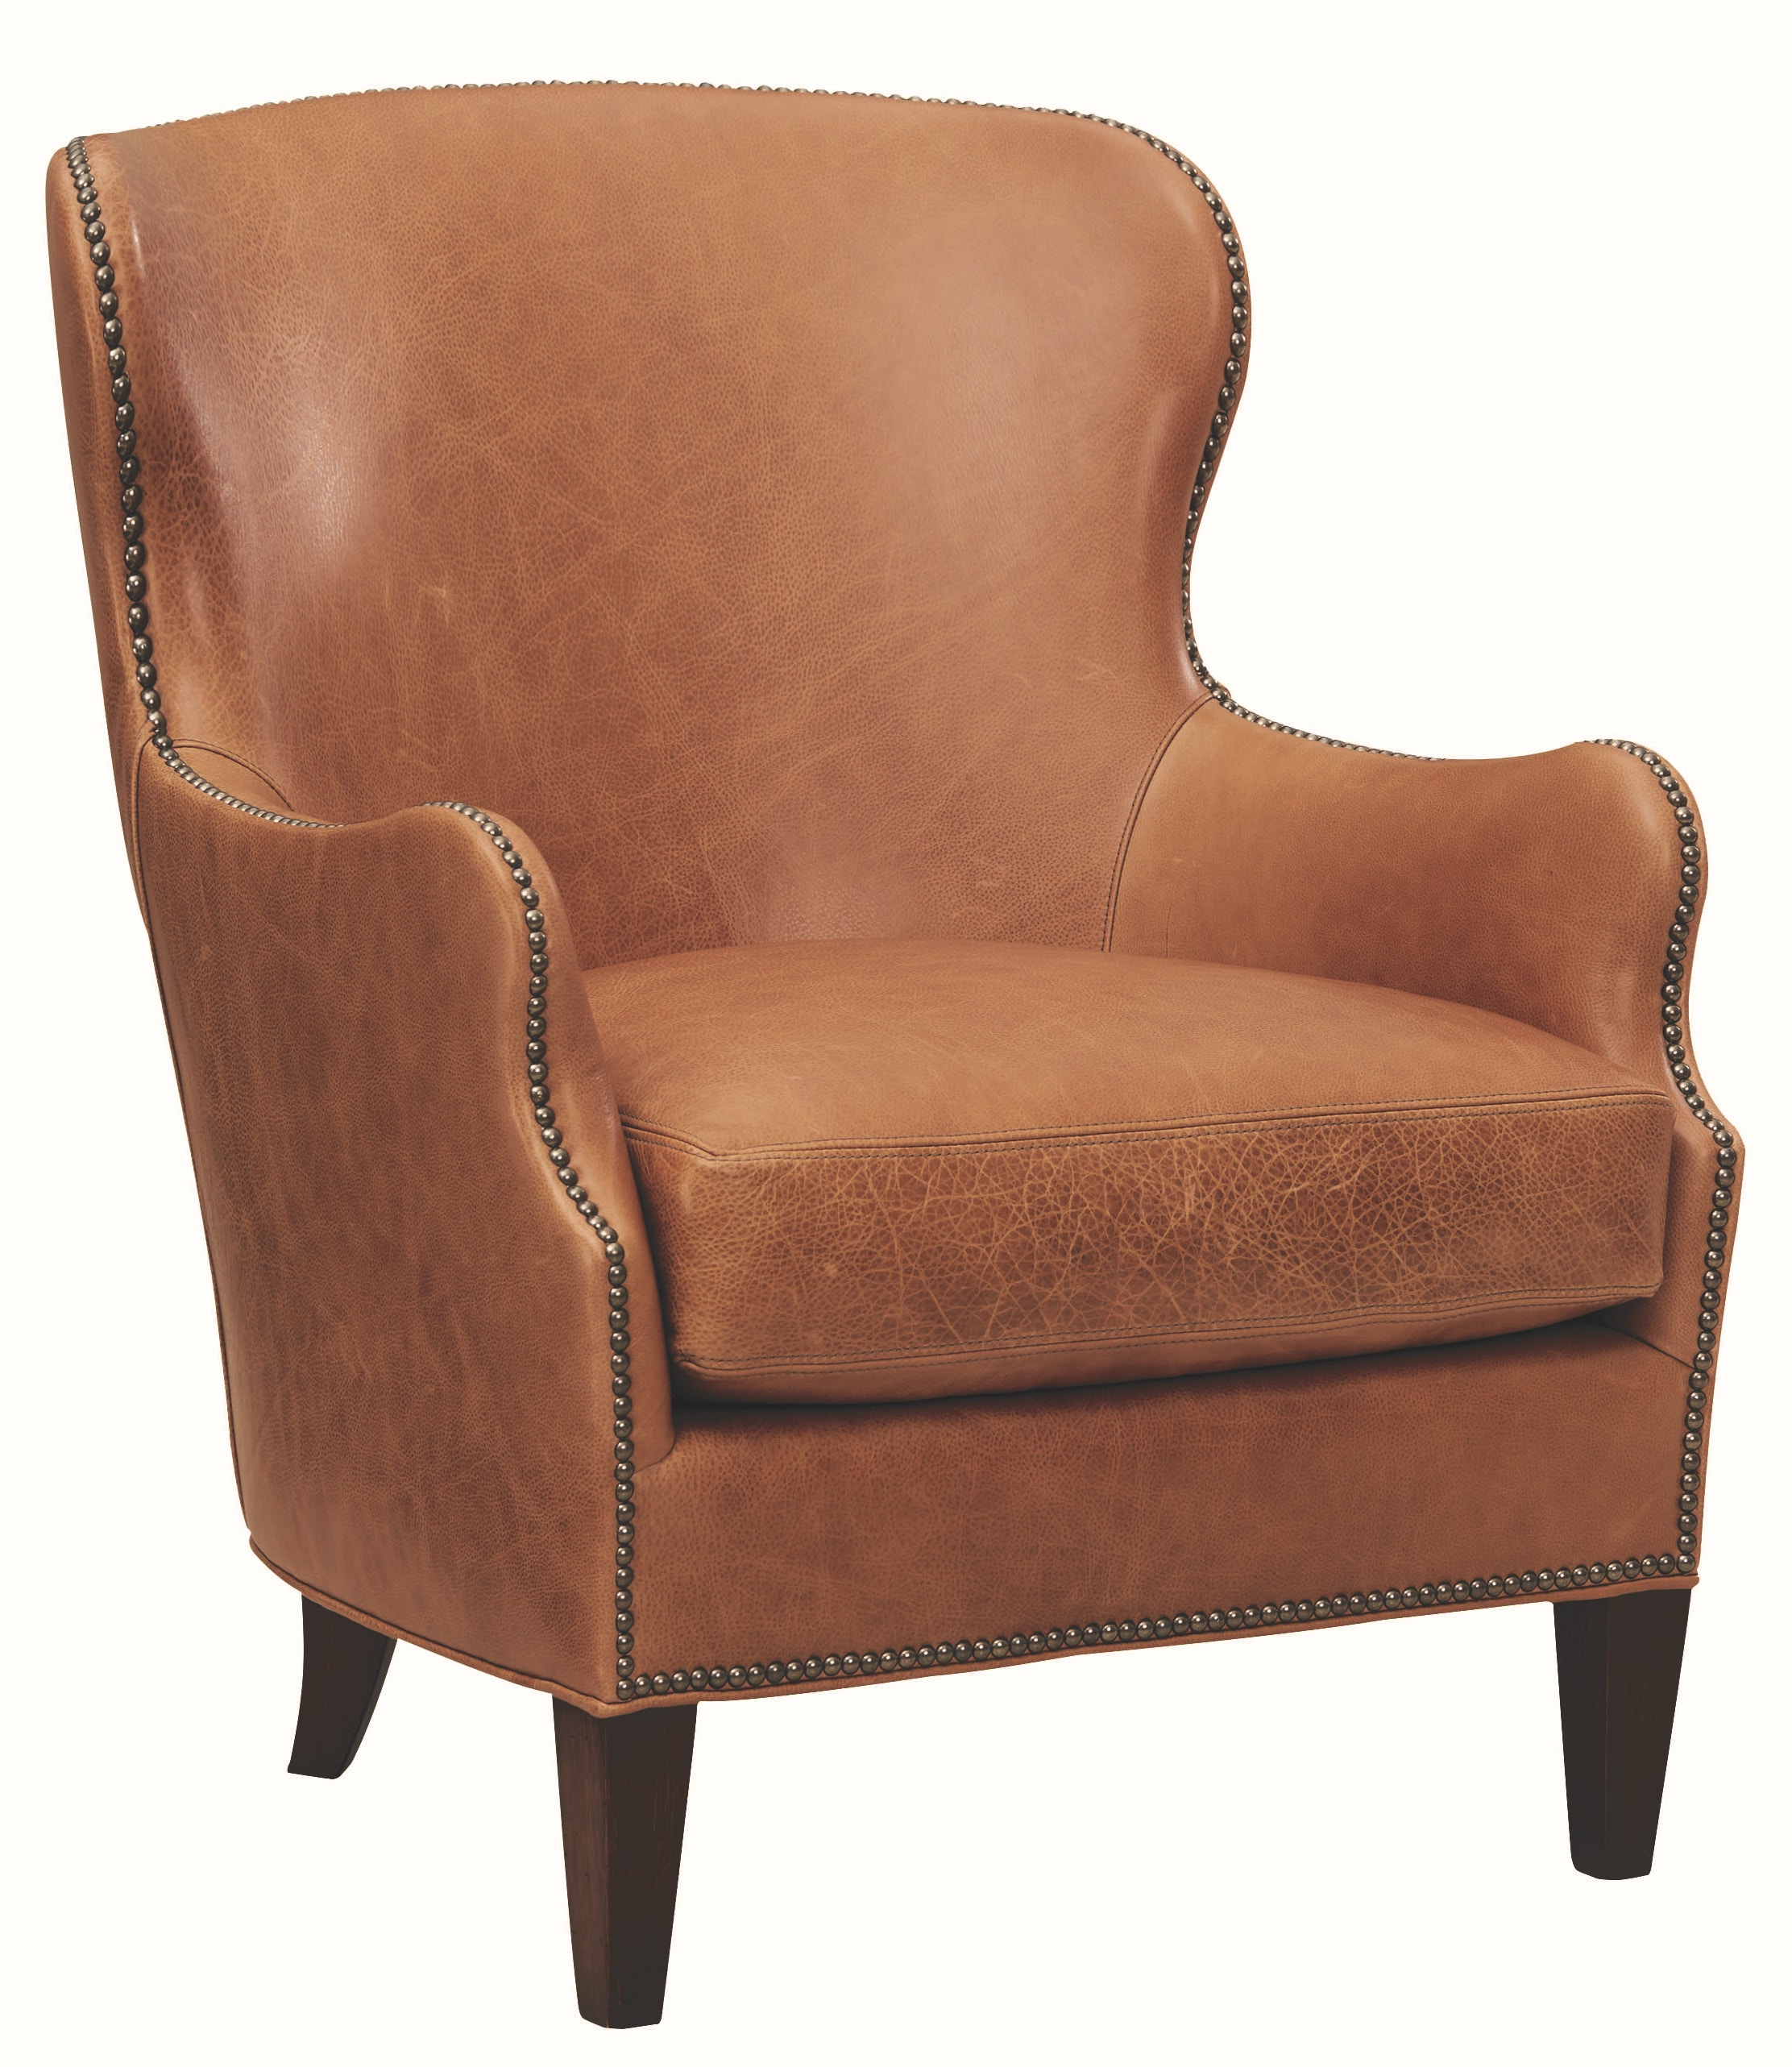 Lee Industries Leather Chair L1993 41